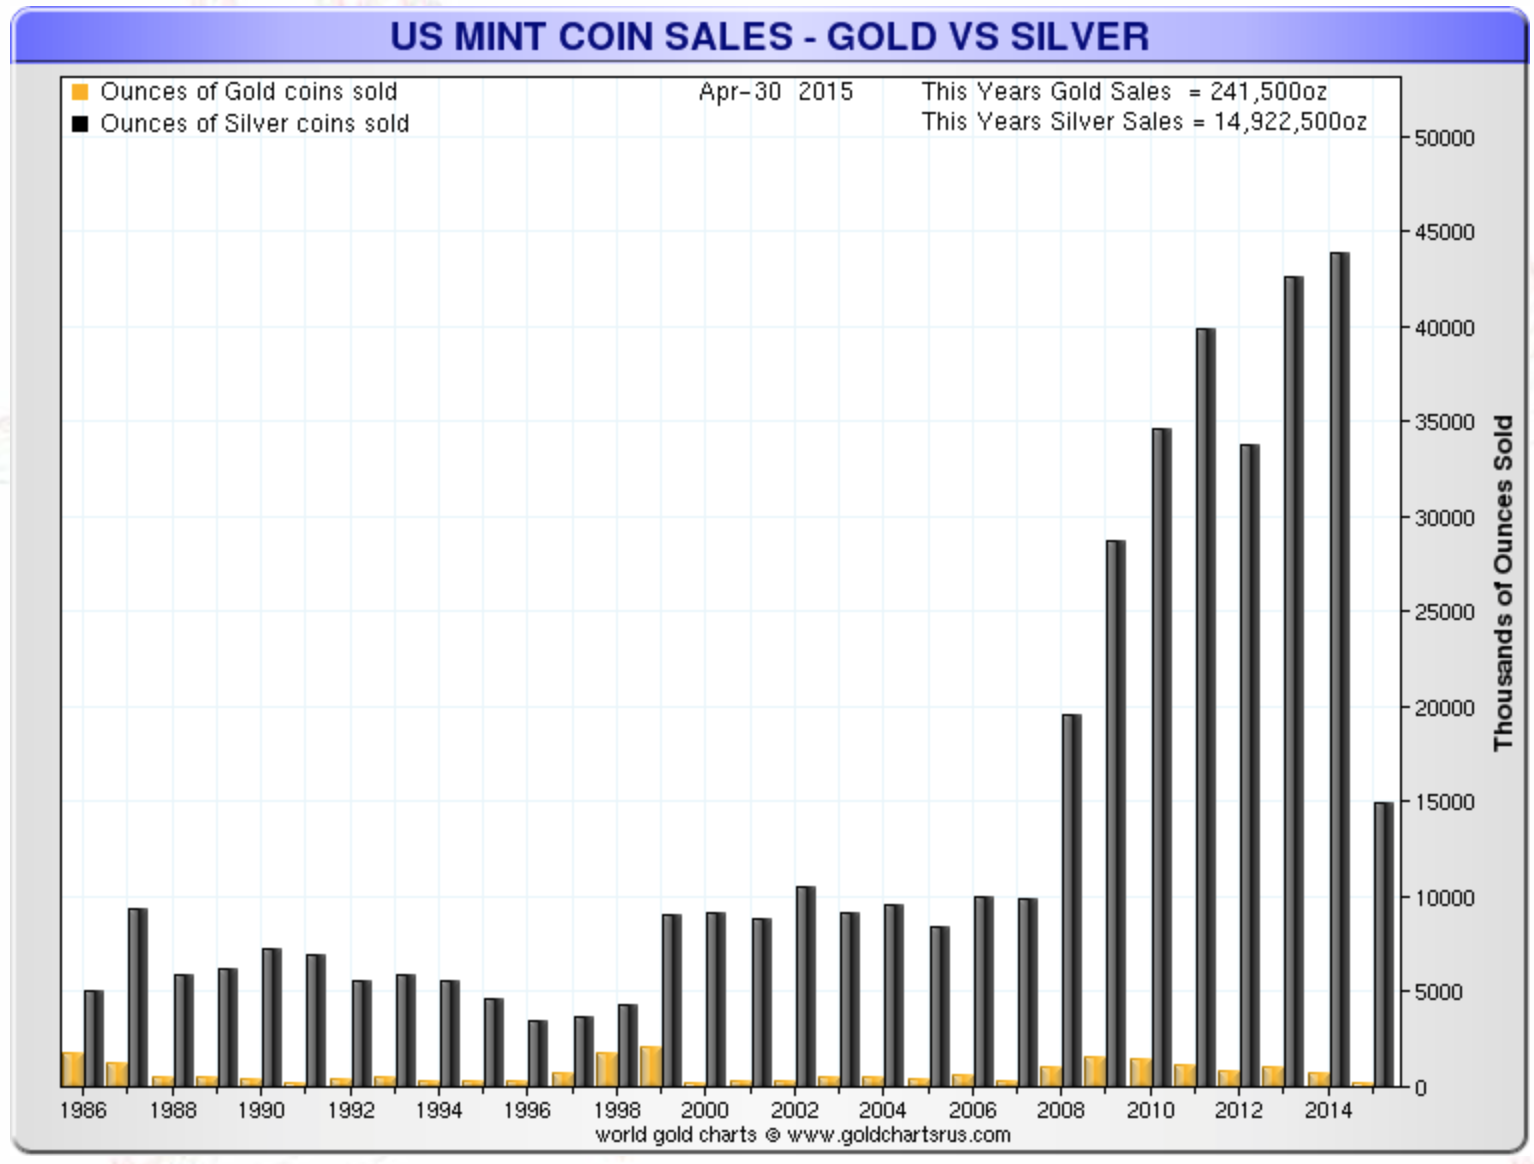 US Mint Coin Sales – Gold vs Silver (Ounces)